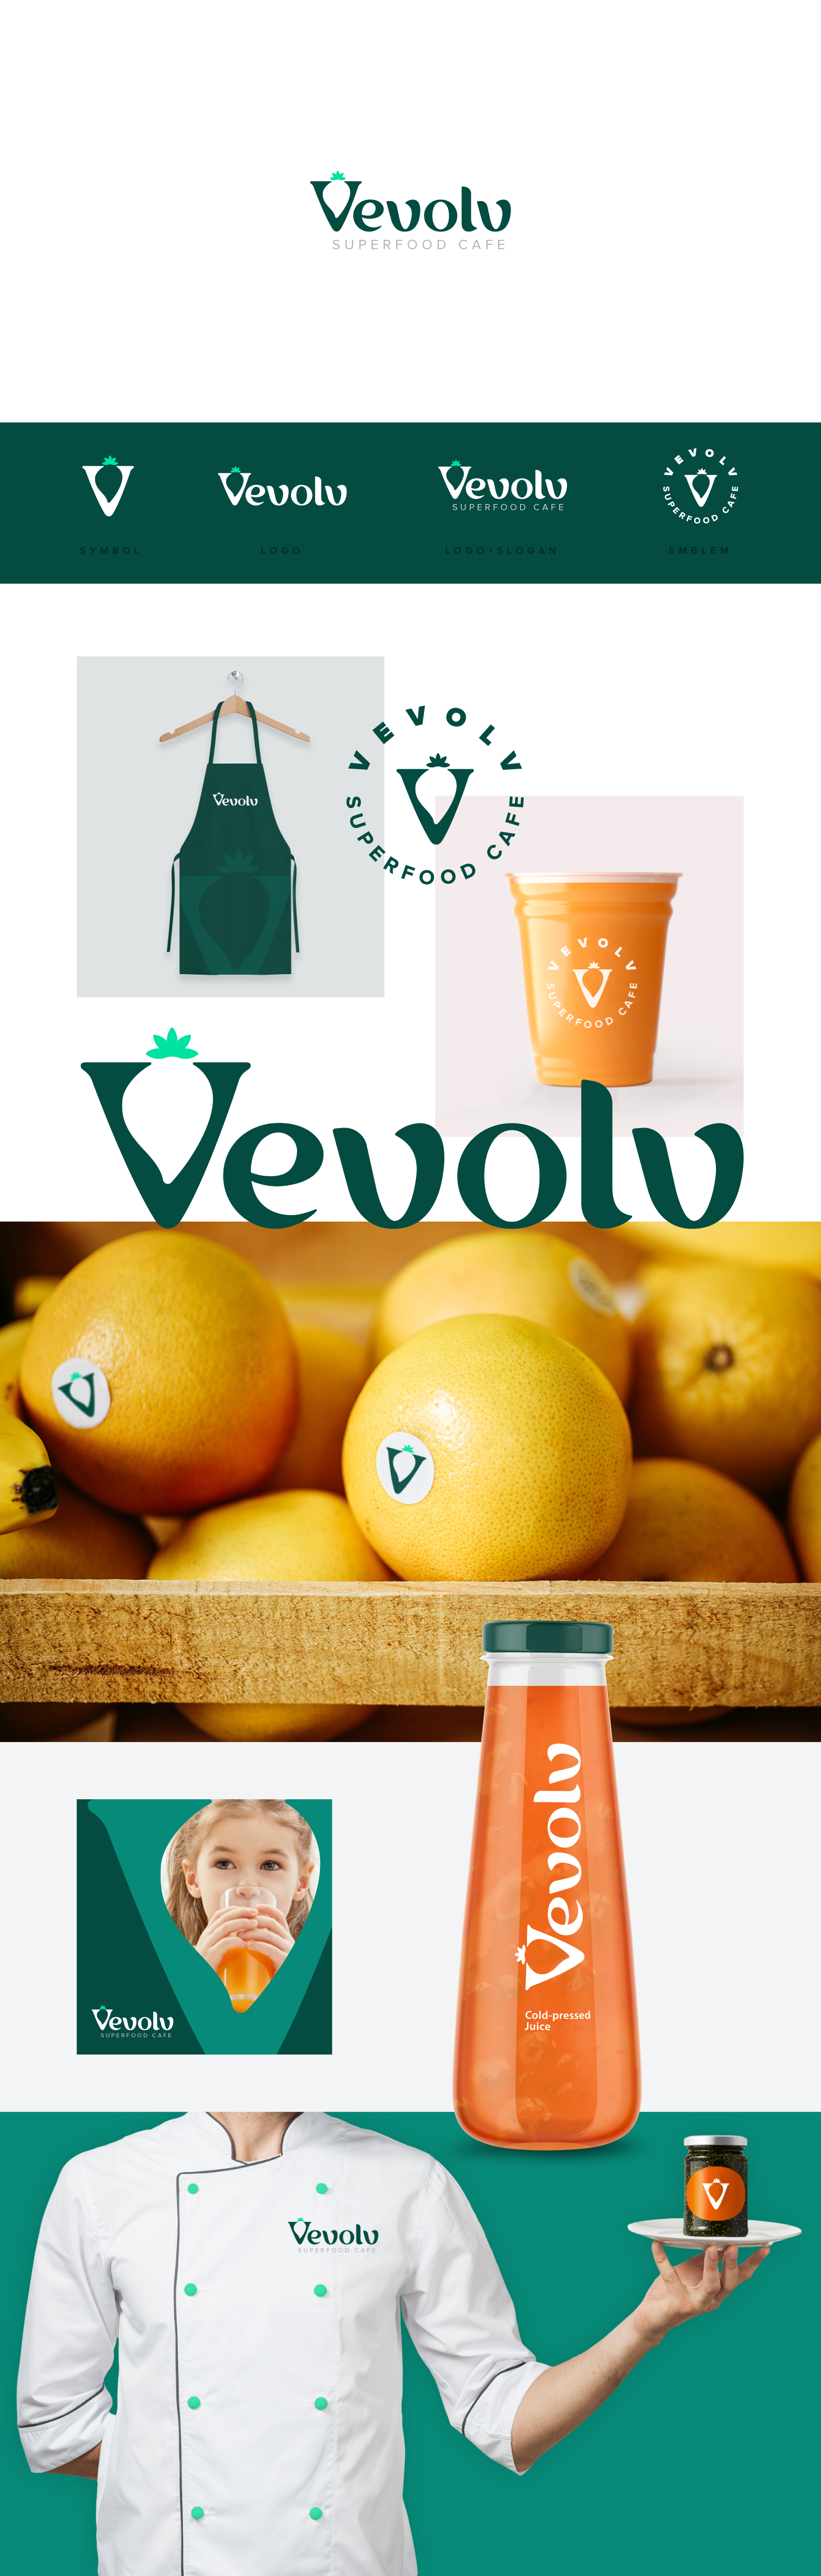 Vevolv : Superfood Cafe Logo (retail, bowl, cold pressed juices, oats and no bake pastries)